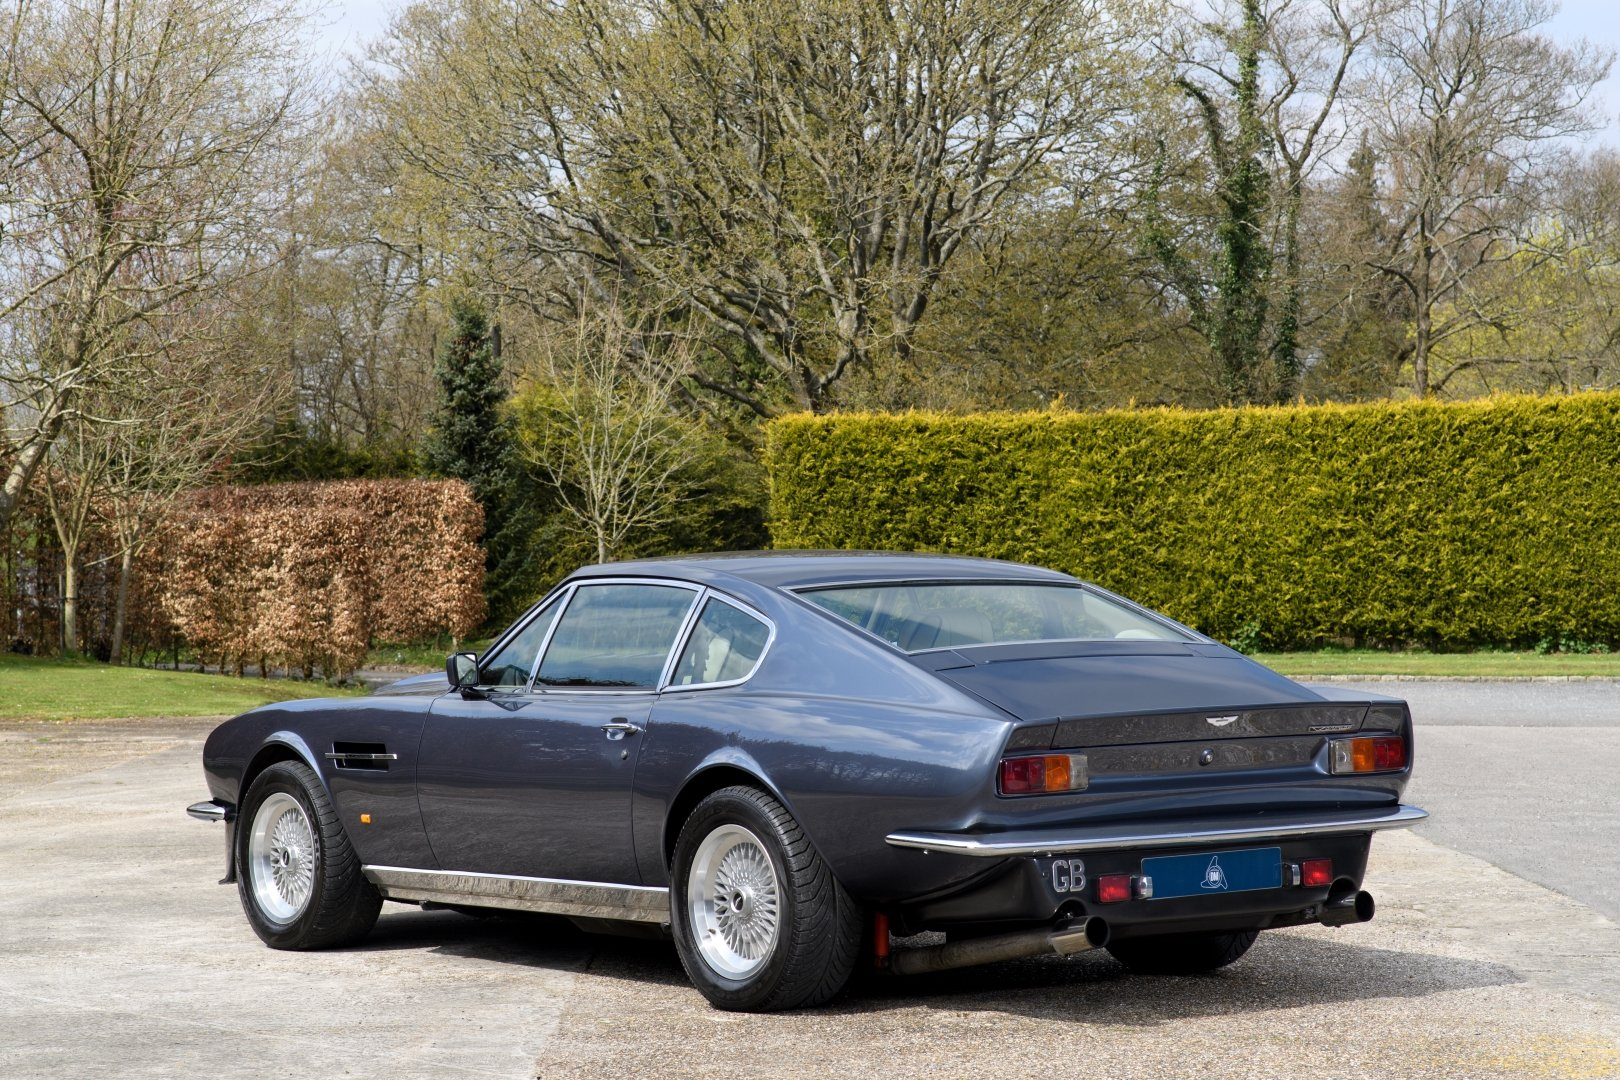 1974 Aston Martin V8 Series 3 Coupe - 'Oscar India' Spec For Sale (picture 2 of 6)